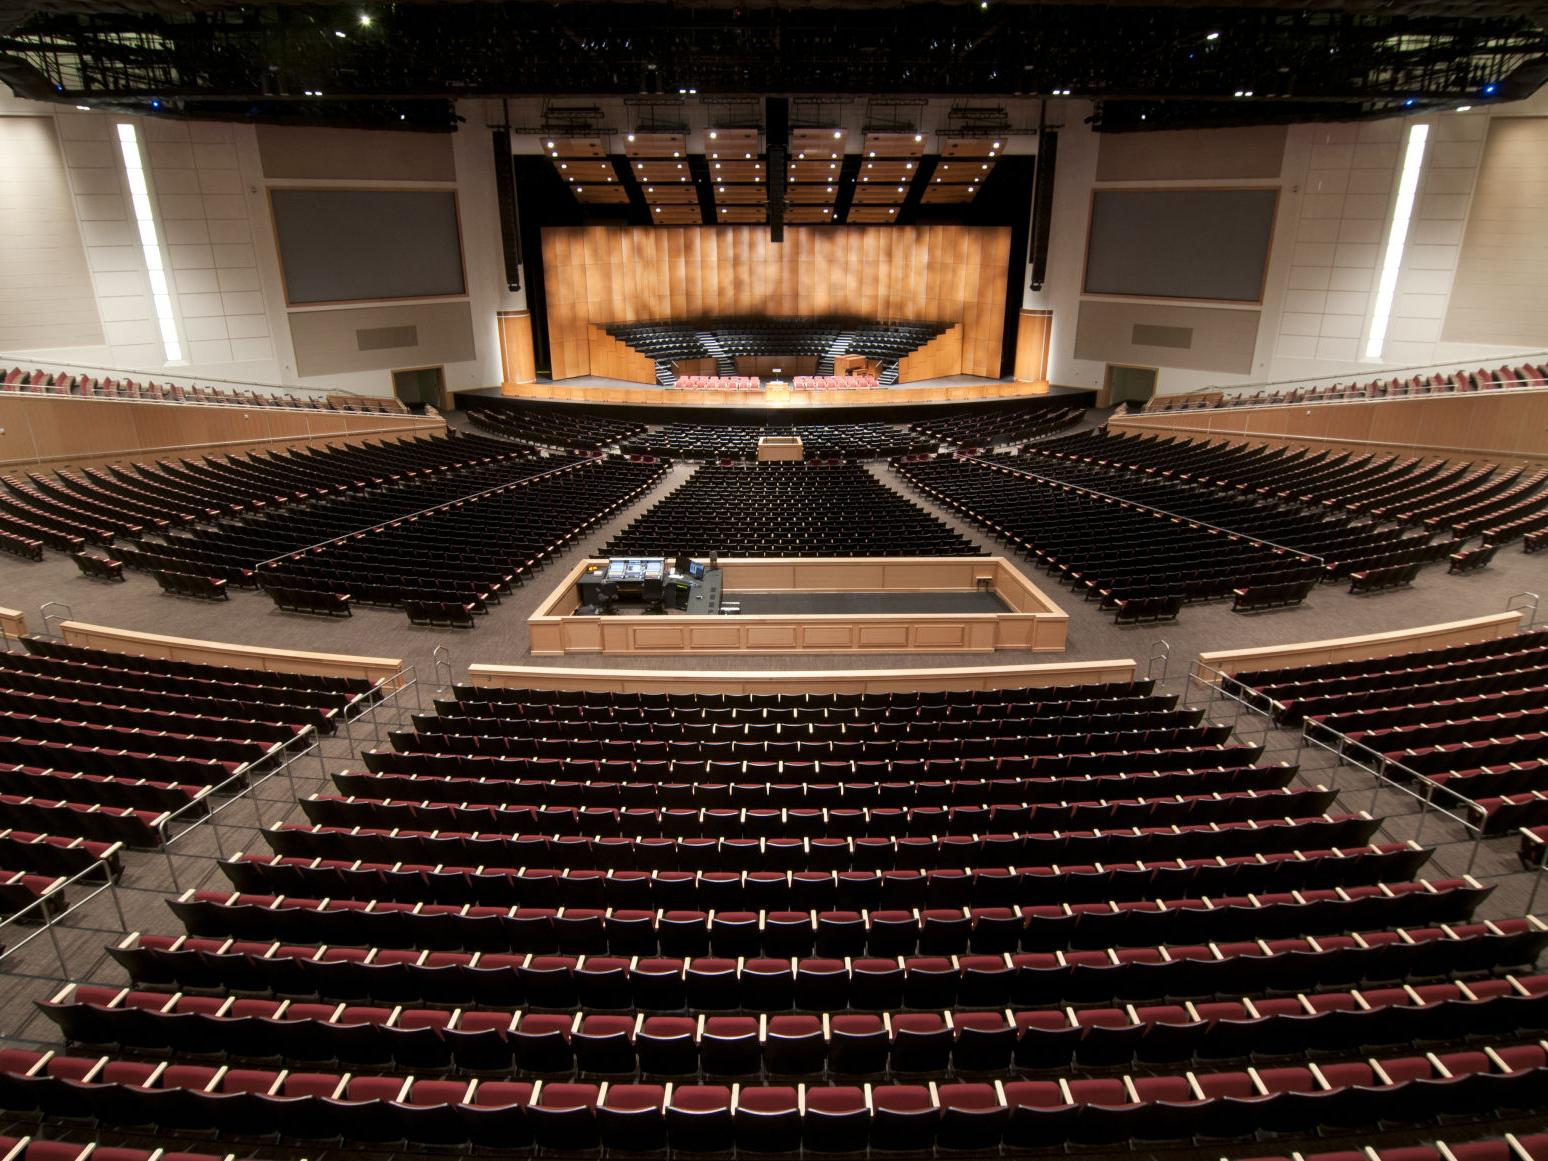 Byui Christmas Concert 2021 About 15 000 To Fill Byu Idaho Center At Concert Saturday Local News Rexburgstandardjournal Com